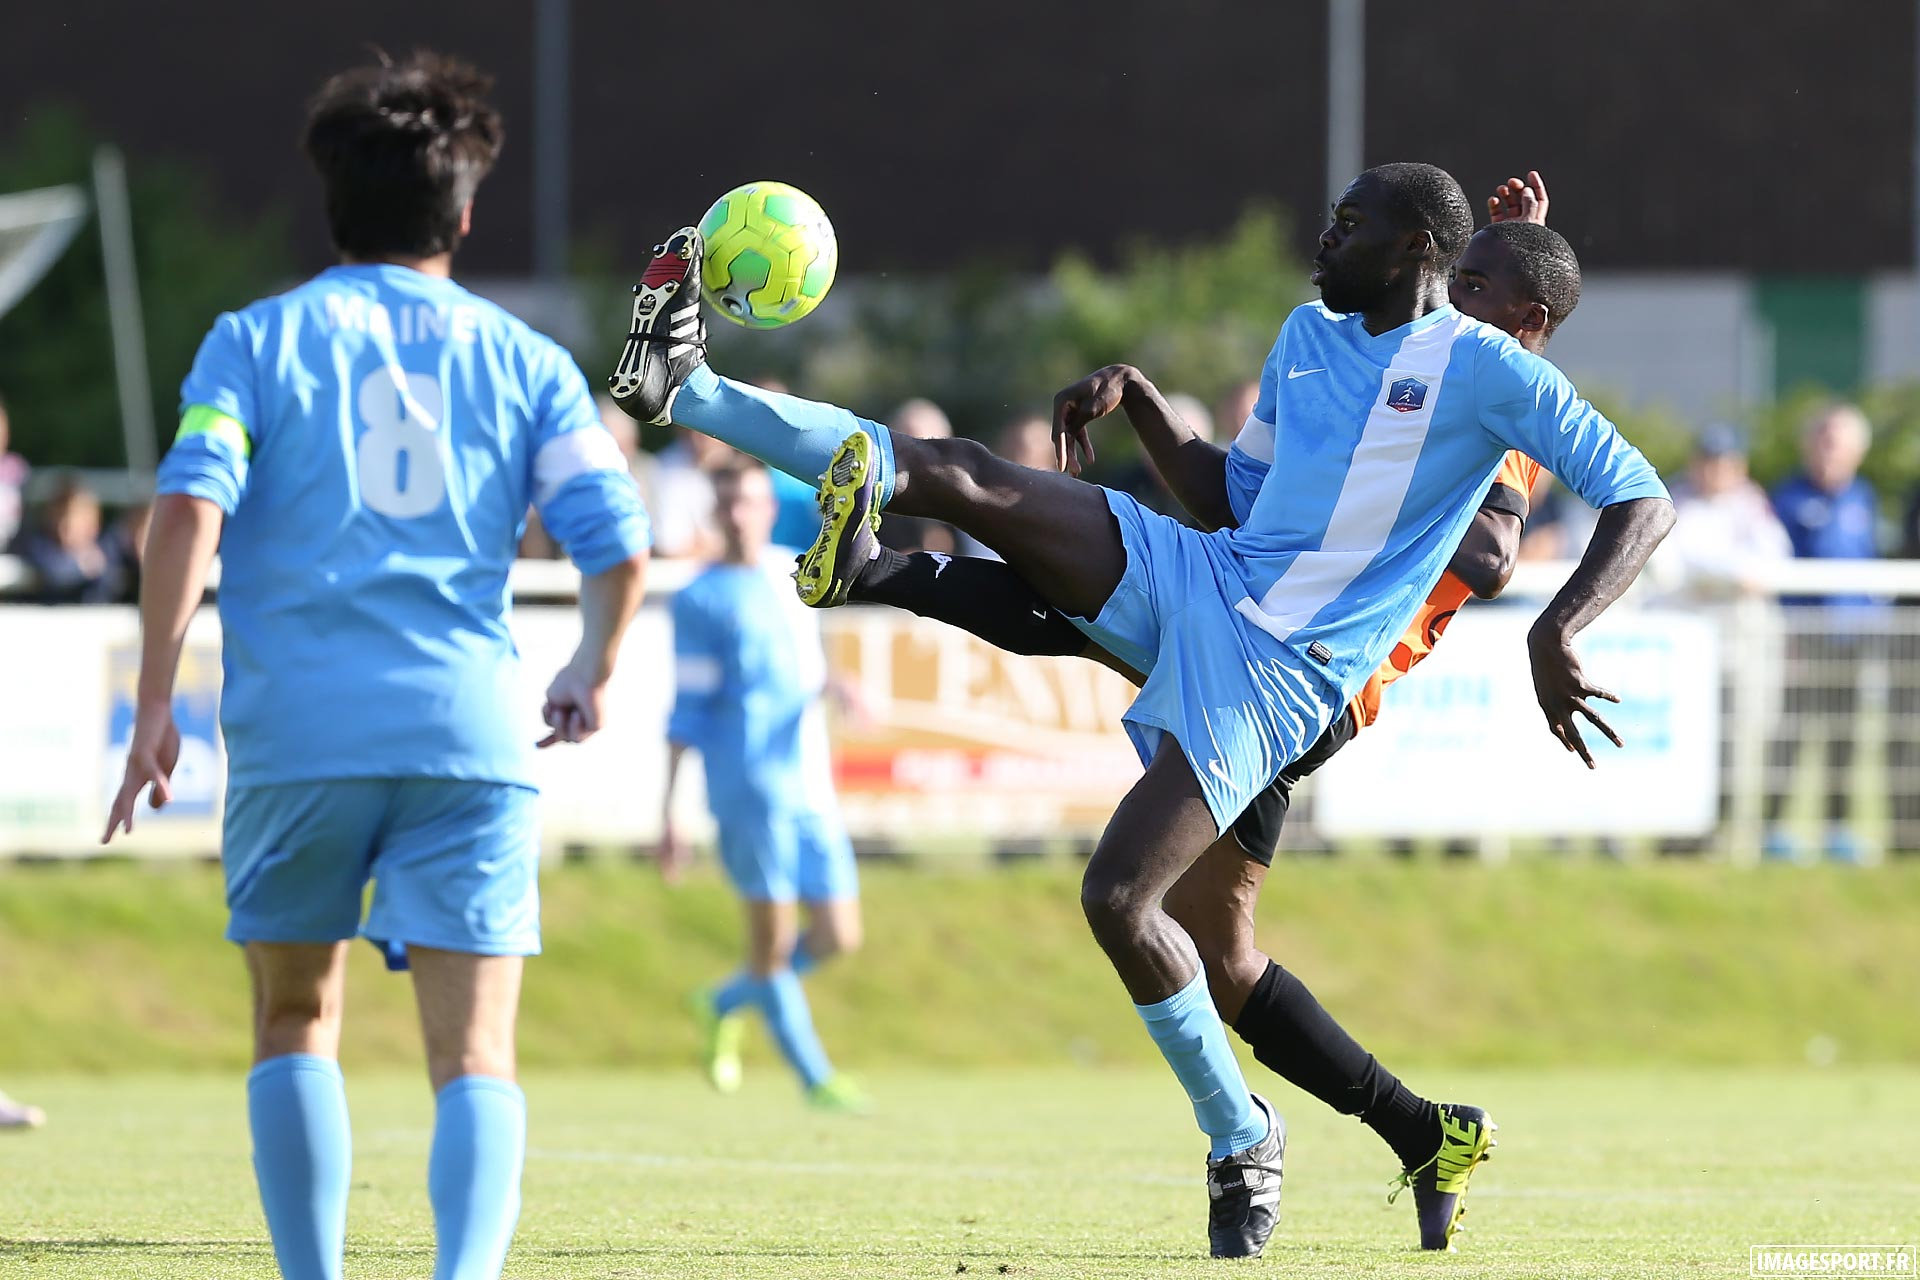 NG_Ligue2_1617_AM1_Laval-liguedumaine (32)